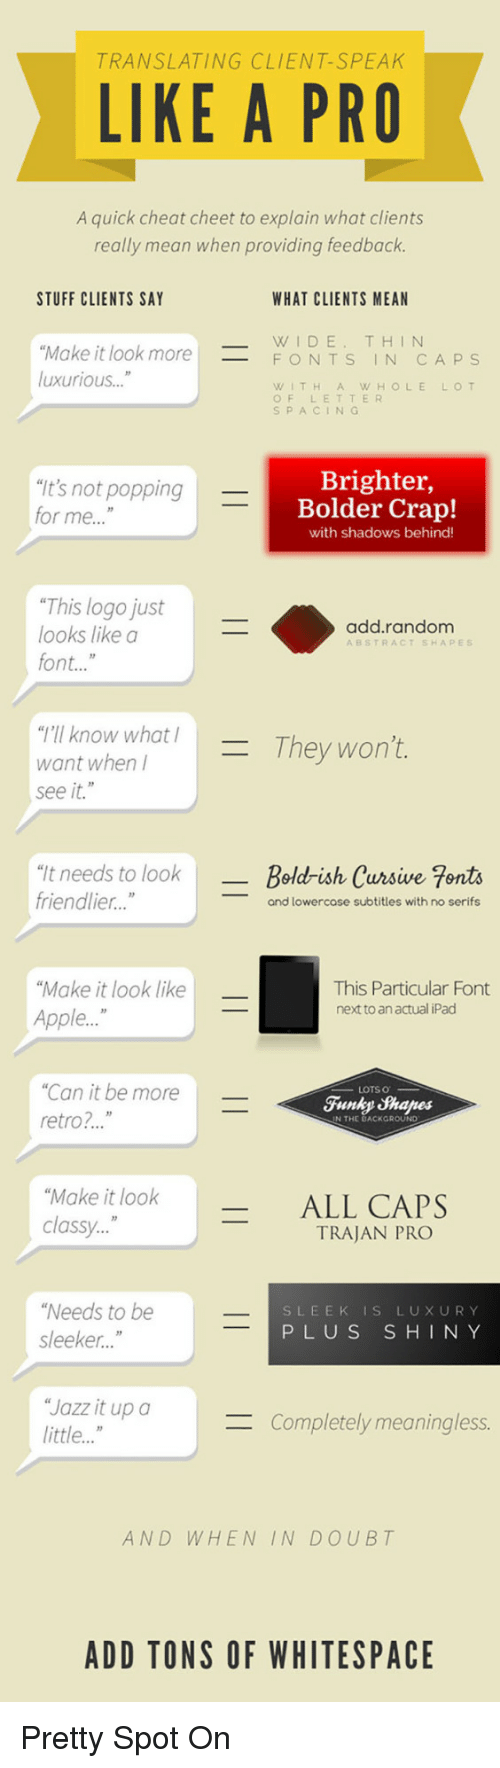 """Apple, Ipad, and Mean: TRANSLATING CLIENT-SPEAK  LIKE A PRO  A quick cheat cheet to explain what clients  really mean when providing feedback  STUFF CLIENTS SAY  WHAT CLIENTS MEAN  WIDE, THIN  FONTS IN CA PS  Make it look more  luxurious """"  WITHAWHOLELOT  OF LETTER  S PACIN  """"It's not popping  for me...""""  Brighter,  Bolder Crap!  with shadows behind  """"This logo just  looks like a  font...""""  add.random  ABSTRACT SHAPES  """"T'II know what /  want when l  see it.""""  They won't  """"It needs to look  friendlier..  -Bold-ish Cursive Fonts  and lowercose subtitles with no serifs  Make it look like  Apple...""""  This Particular Font  next to an actual iPad  """"Can it be more  retro?..""""  Funky Shapes  N THE DACKGROUND  """"Make it look  classy.  _ ALL CAPS  TRAJAN PRO  Needs to be  sleeker...""""  SLEEK IS LUXURY  PLUS SHINY  Jazz it upo  little...""""  Completely meaningless.  AND WHEN IN DOUBT  ADD TONS OF WHITESPACE <p>Pretty Spot On</p>"""